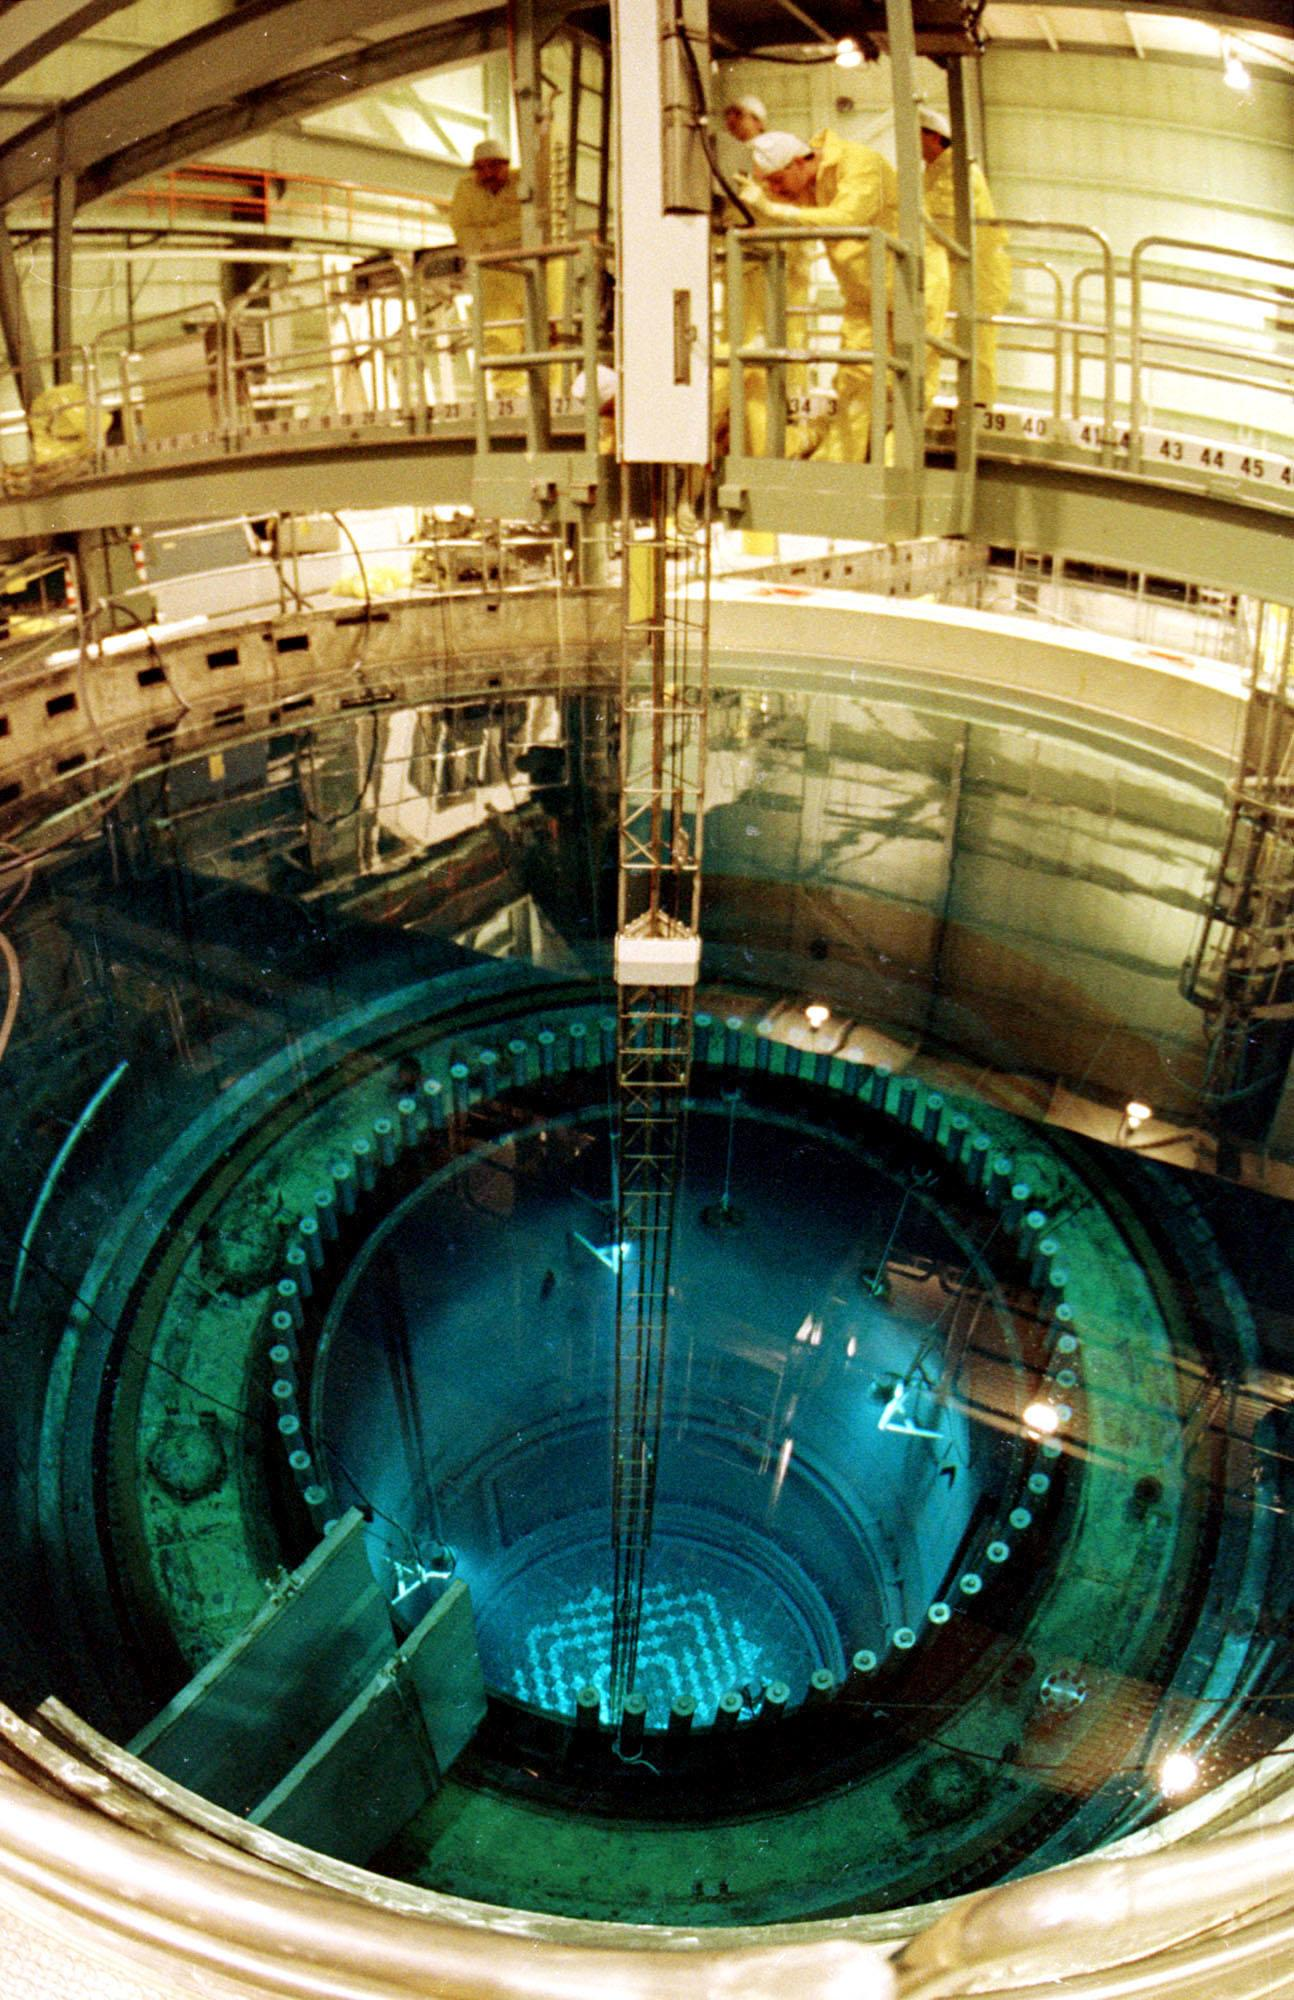 FILE - In this Dec.1985 file photo, workers perform maintenance on the reactor vessel at the Vermont Yankee nuclear power plant in Vernon, Vt. Vermont's only nuclear power plant will shut down by the end of 2014, ending a nasty legal battle over the future of the 4-decade-old plant, Entergy Corp. announced Tuesday, Aug. 27, 2013. The Vermont Yankee Nuclear Power Station is expected to cease power production after its current fuel cycle and will begin being decommissioned in the fourth quarter of 2014, the company said.(AP Photo/Toby Talbot, File)